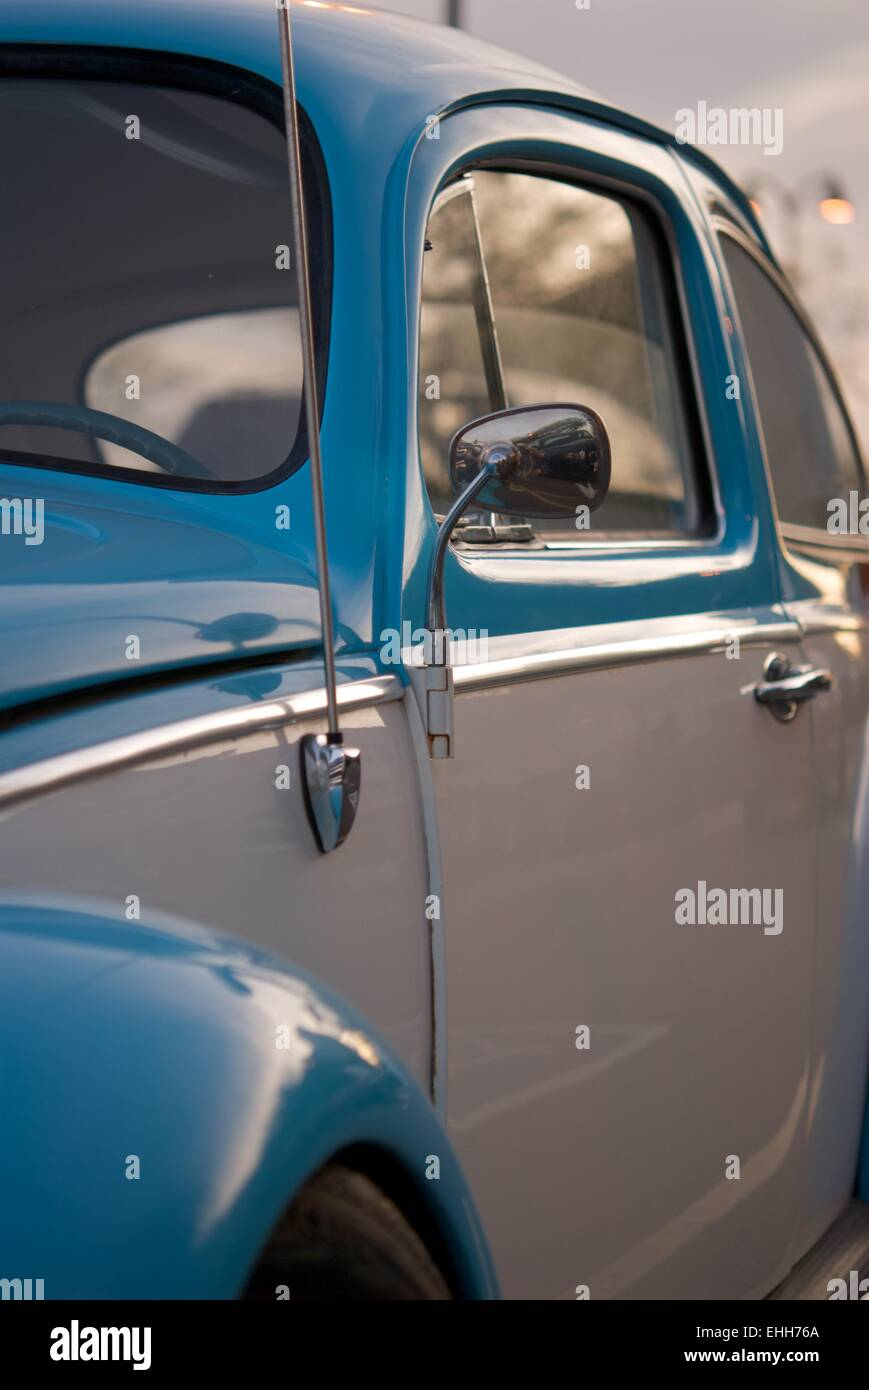 Classic Blue and White VW Beetle - Stock Image